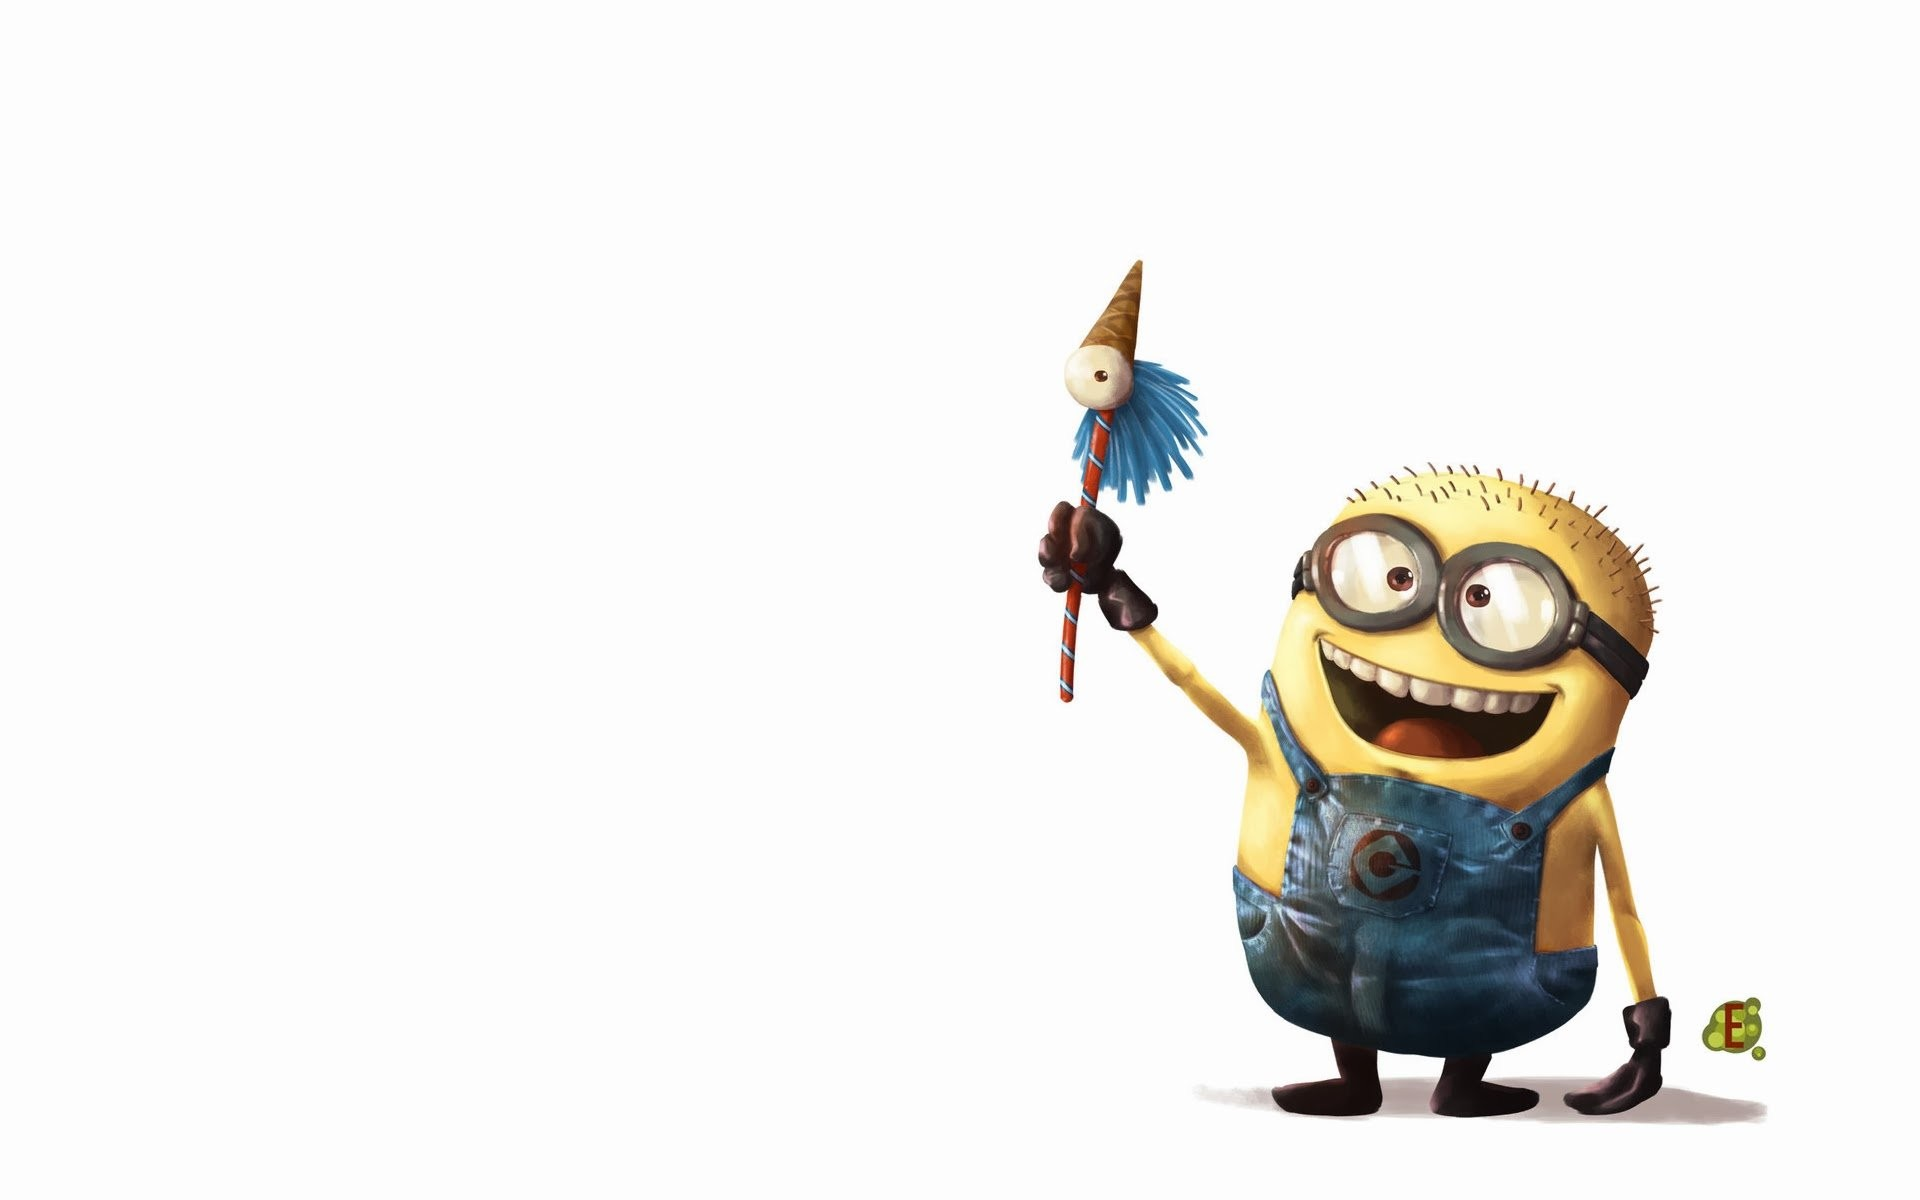 Res: 1920x1200, Hd Cute Minion Wallpapers Images.